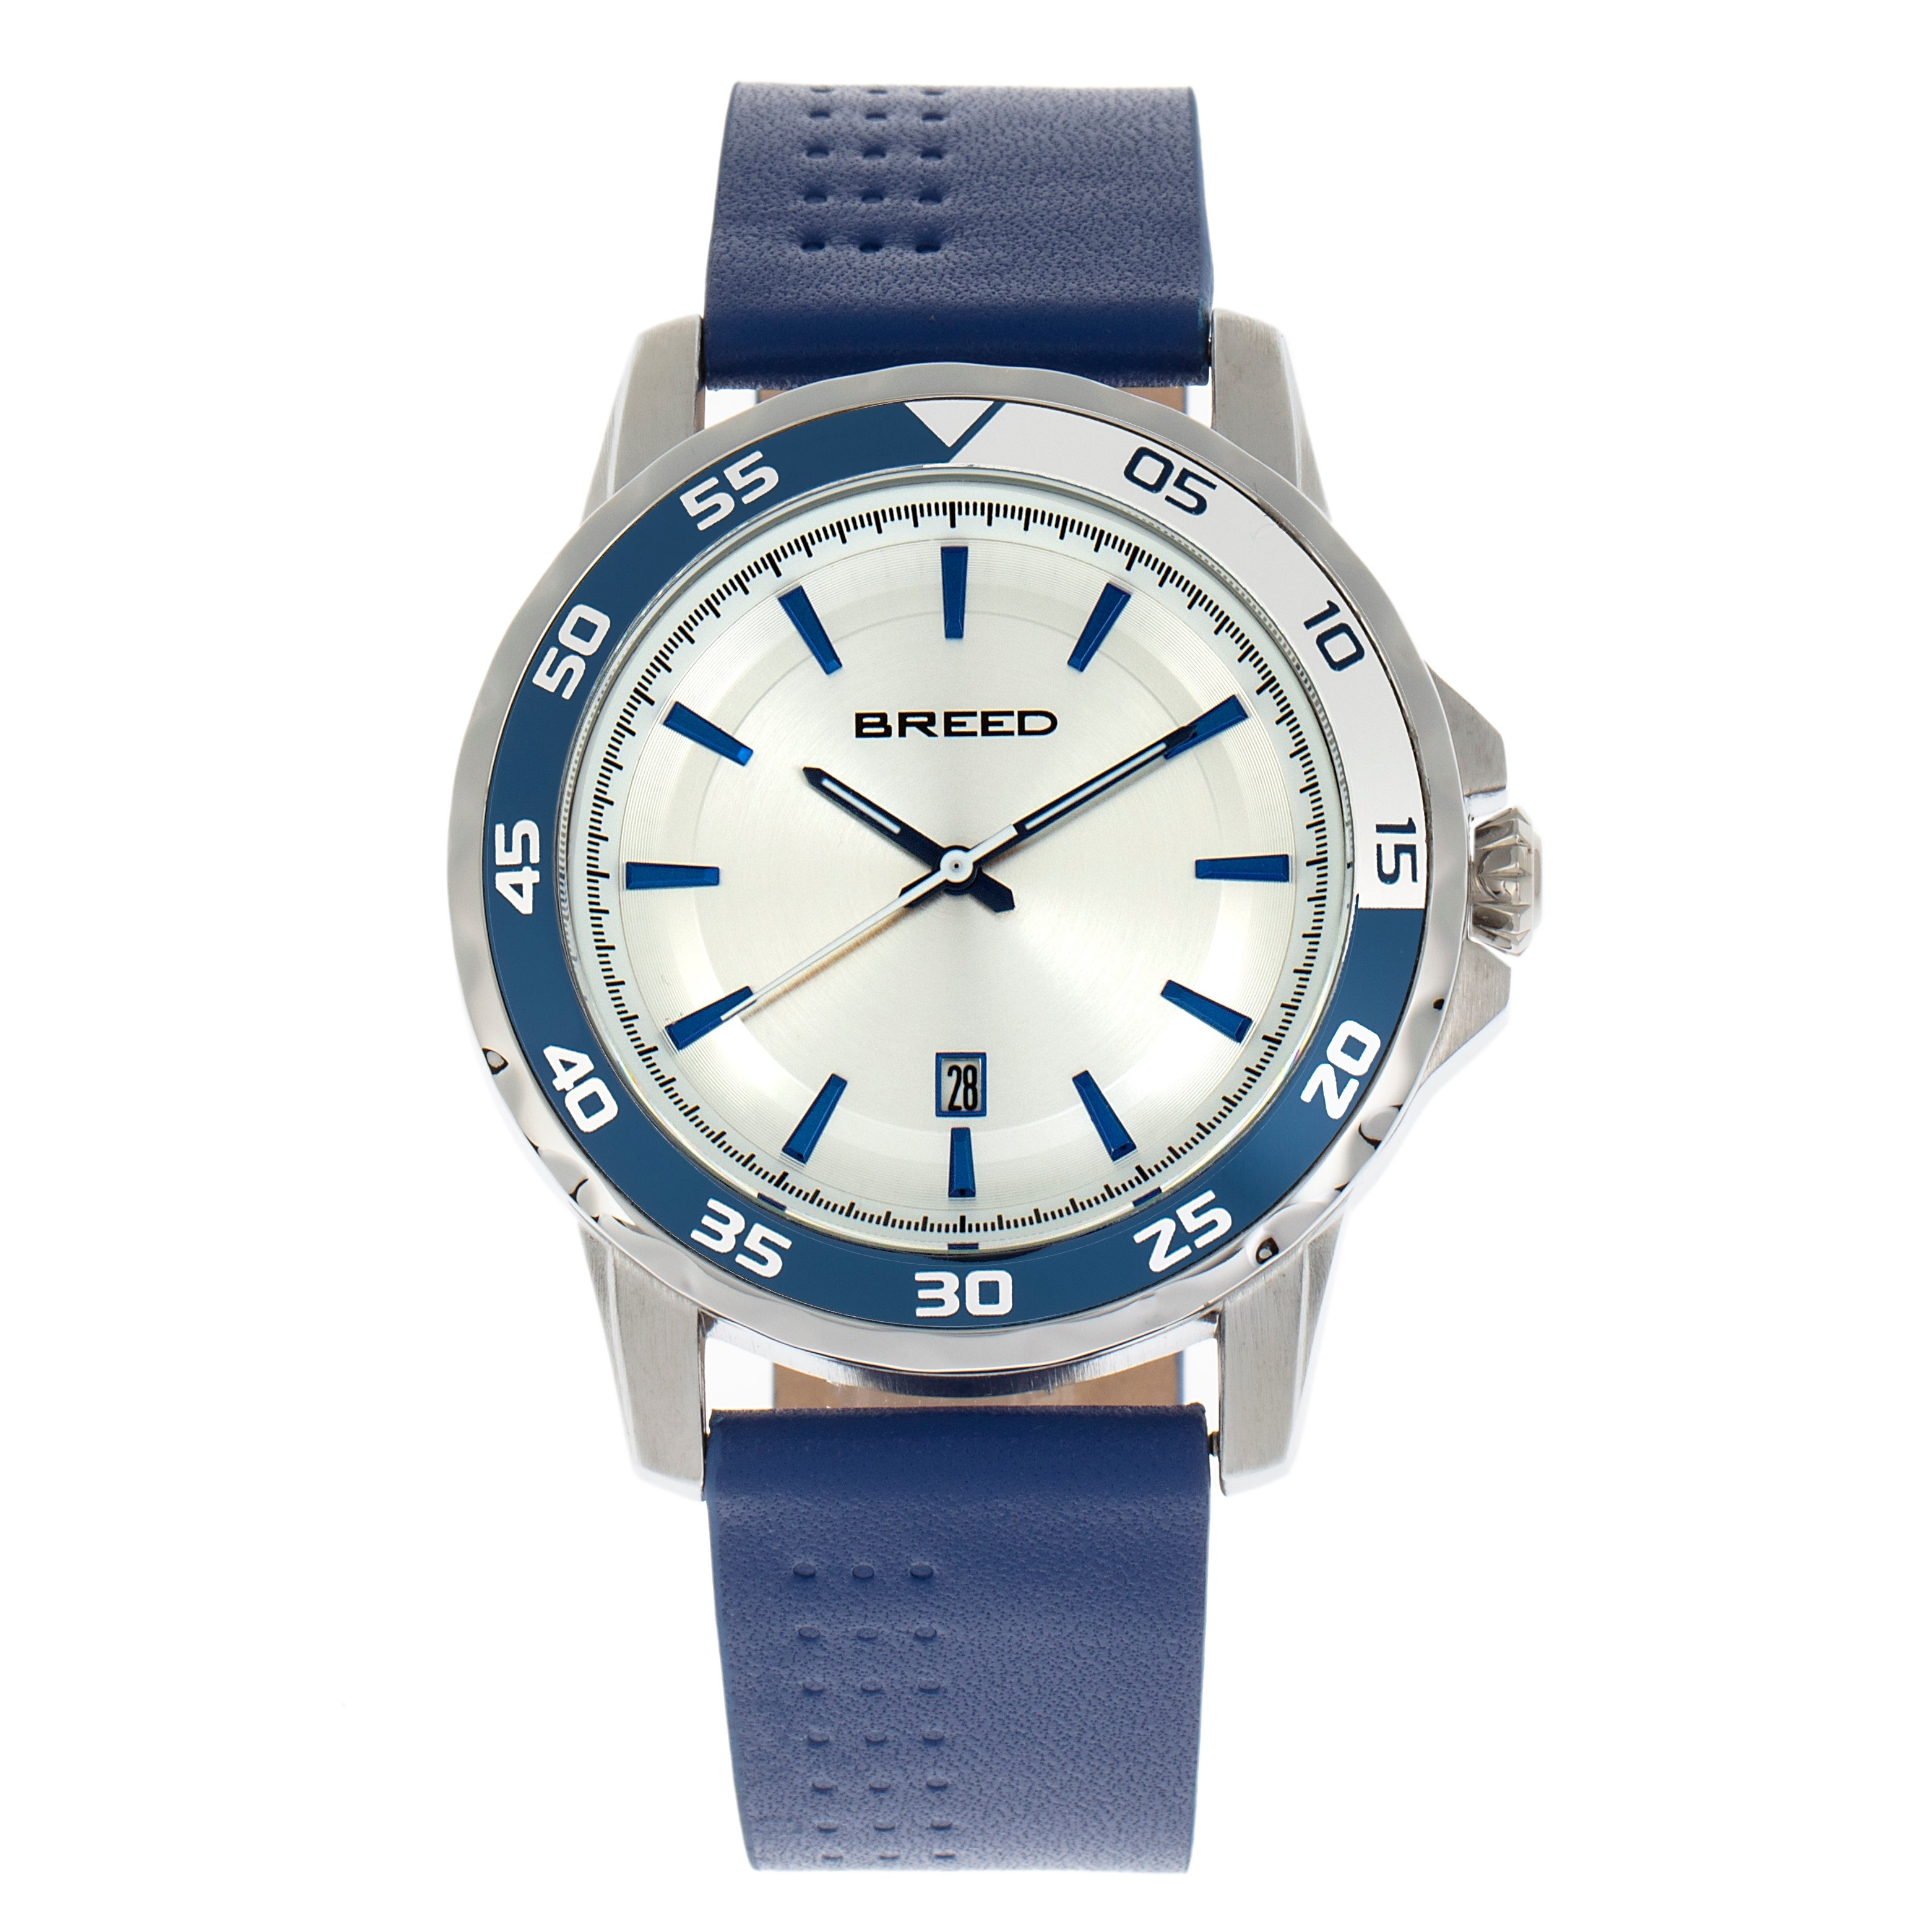 c0780e93957 Casual Breed Men s Watches